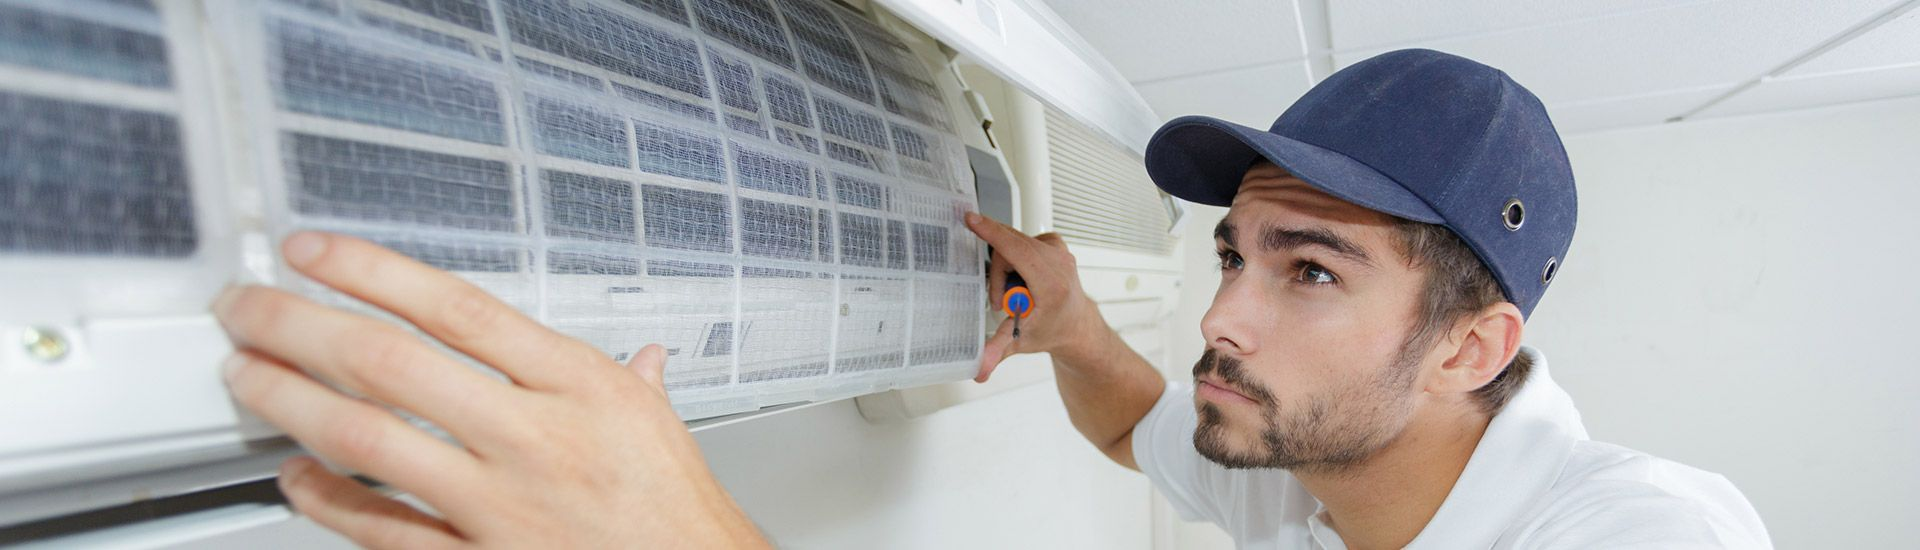 Air Conditioning Service in Fort Lauderdale, Pompano Beach, Deerfield Beach